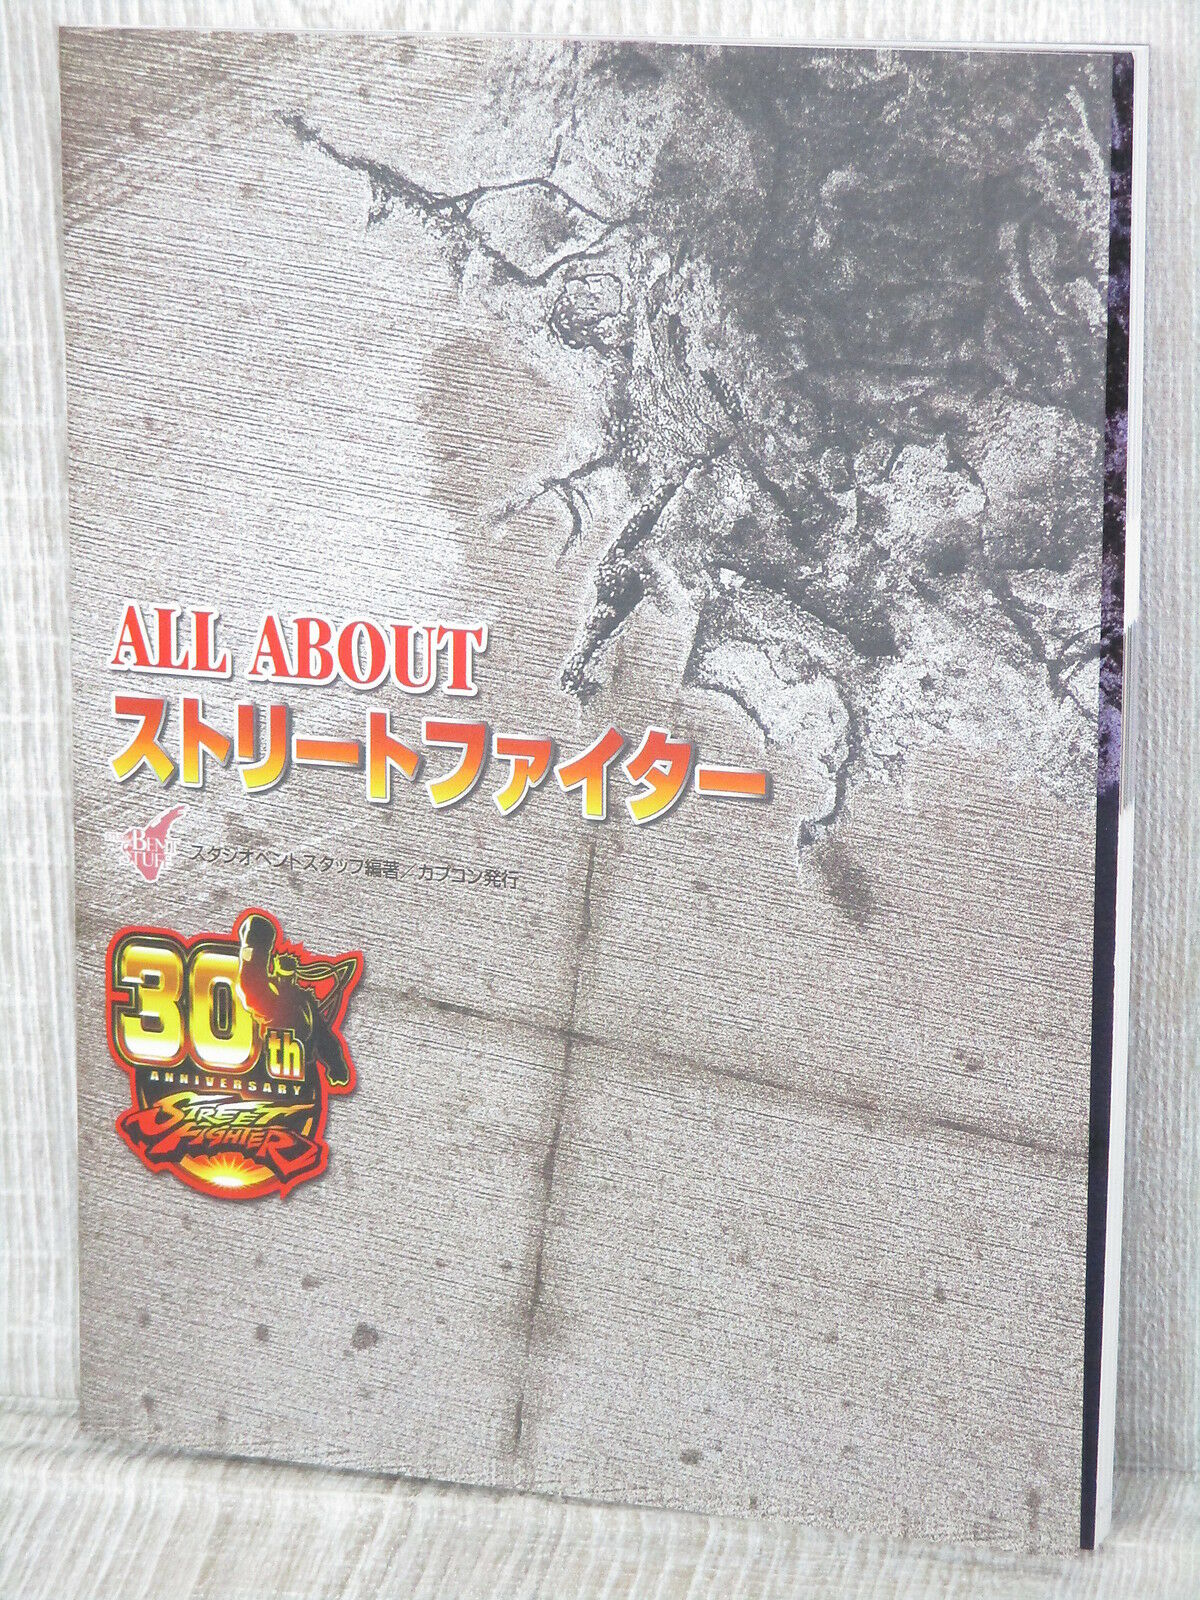 rue Fighter All About 30th Anniv. Art Ventilateur Livre Japon  2003 Limitée  dessins exclusifs